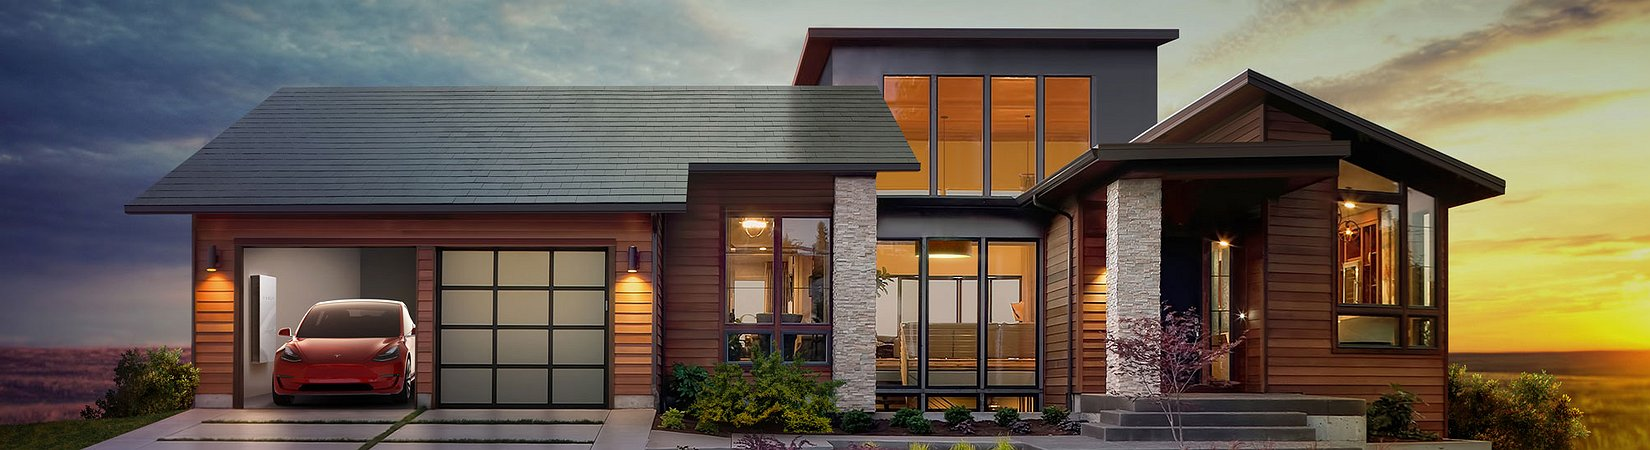 Tesla finally gets a shareholder sign off on SolarCity acquisition